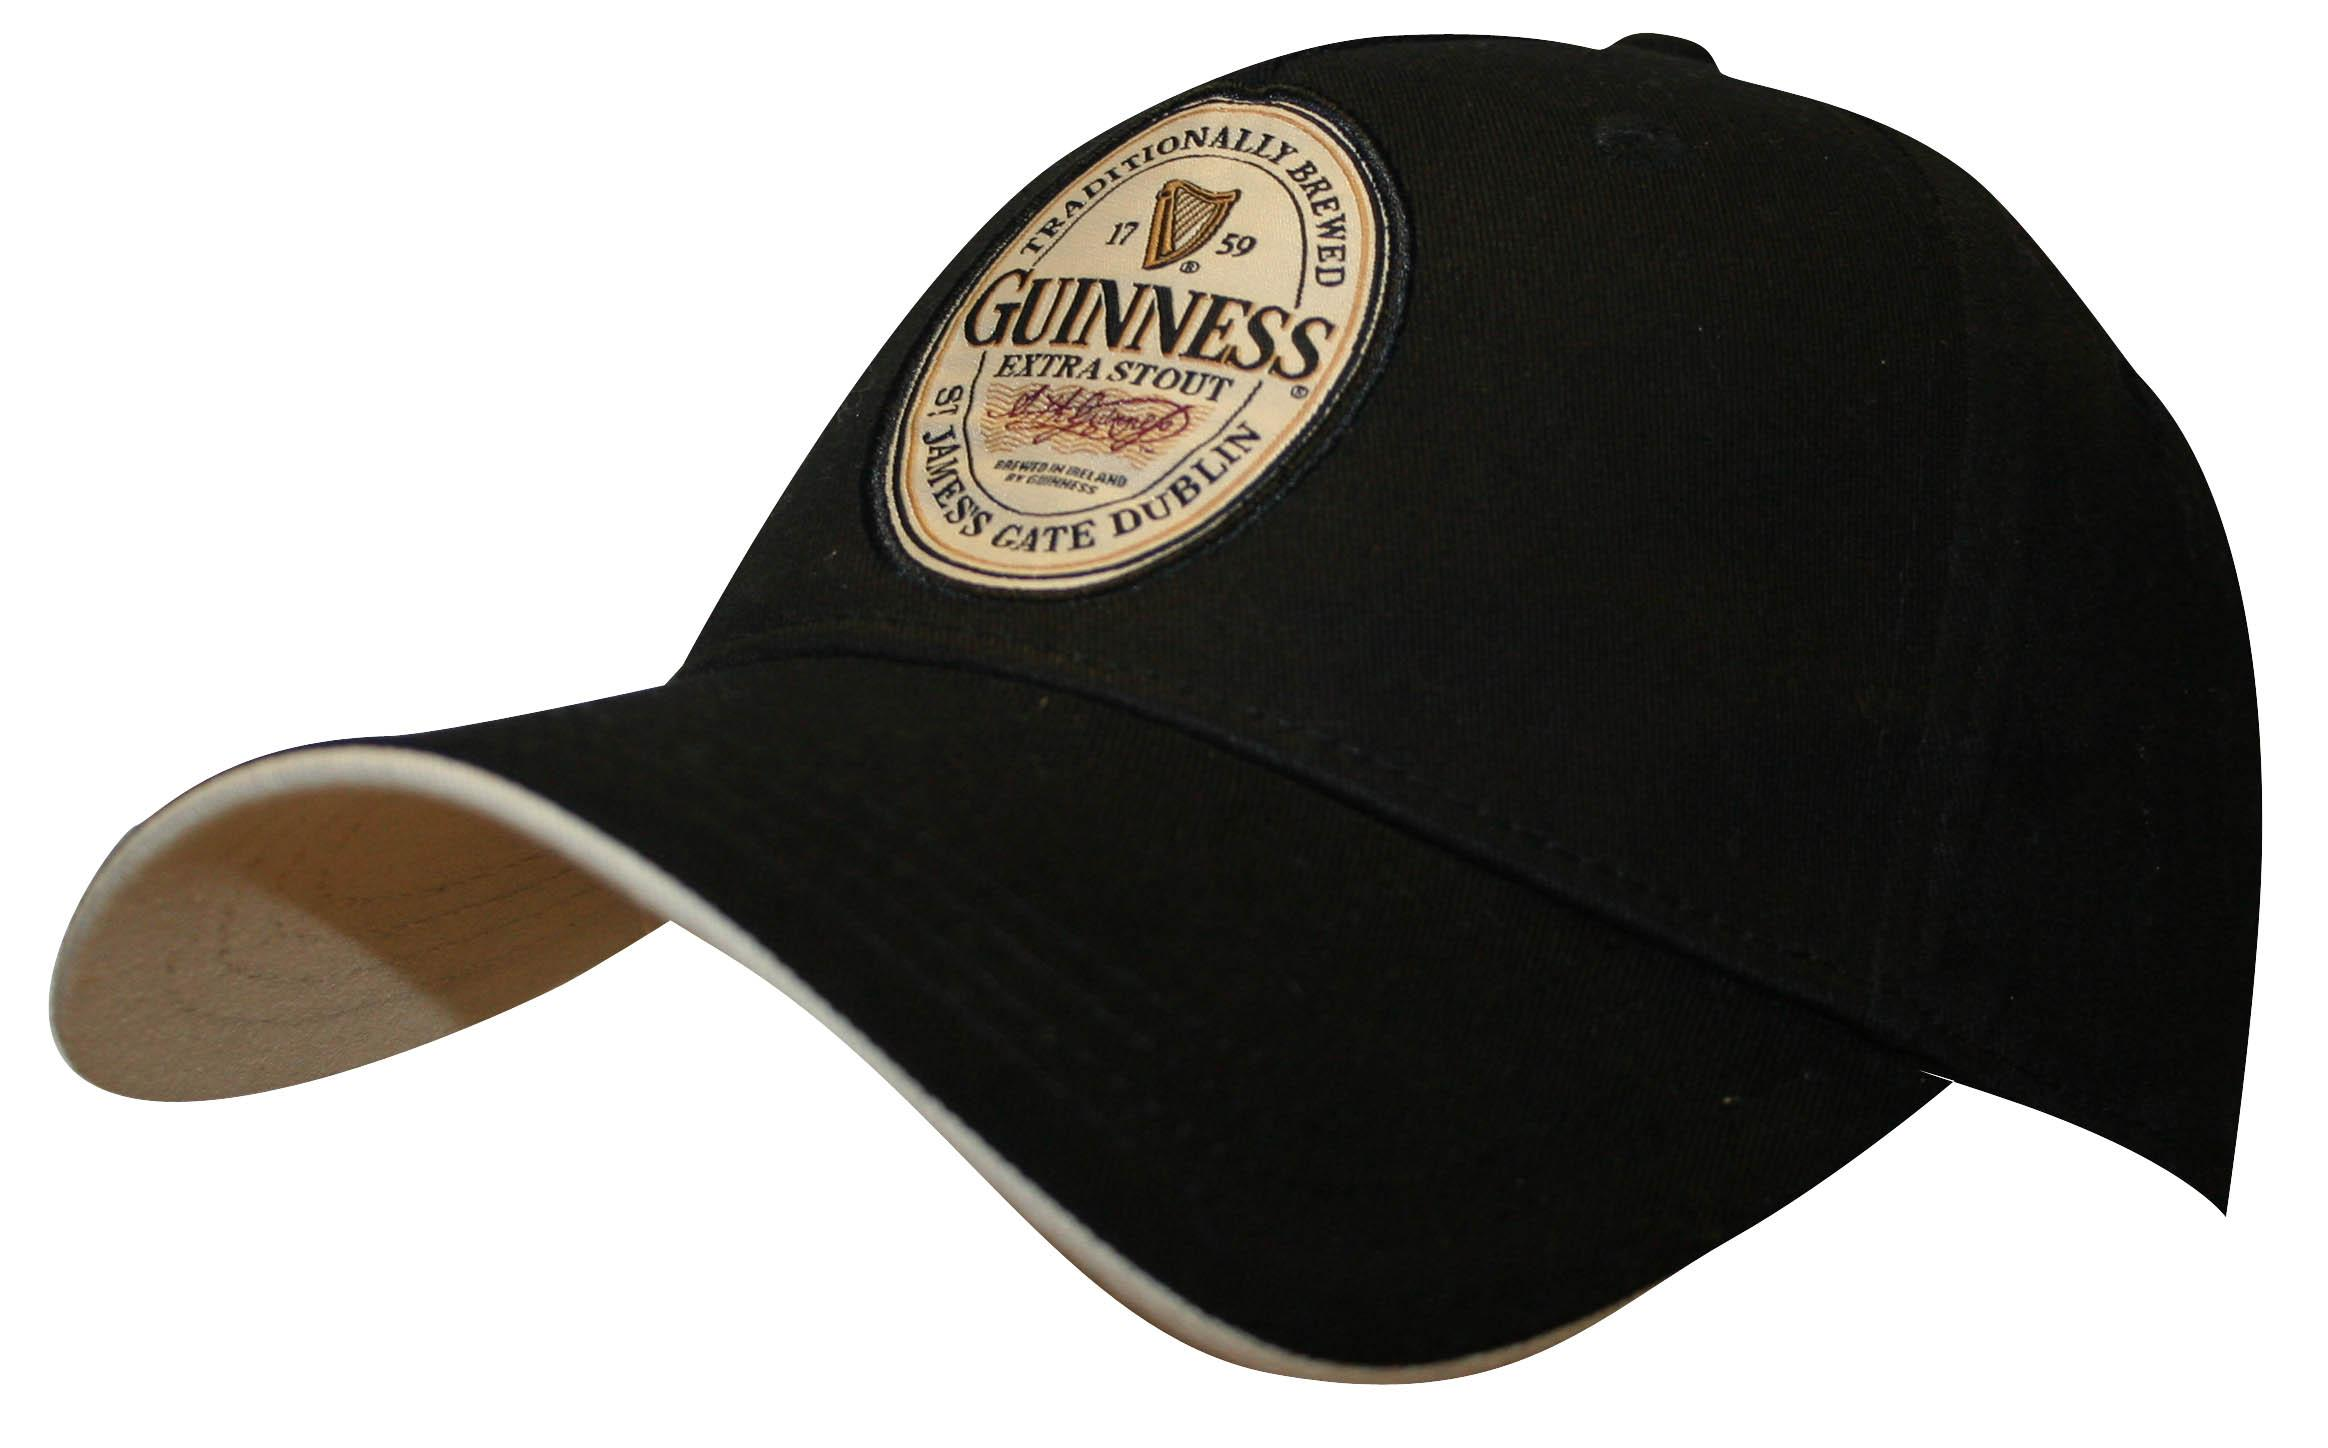 Guinness Black English Label Cap